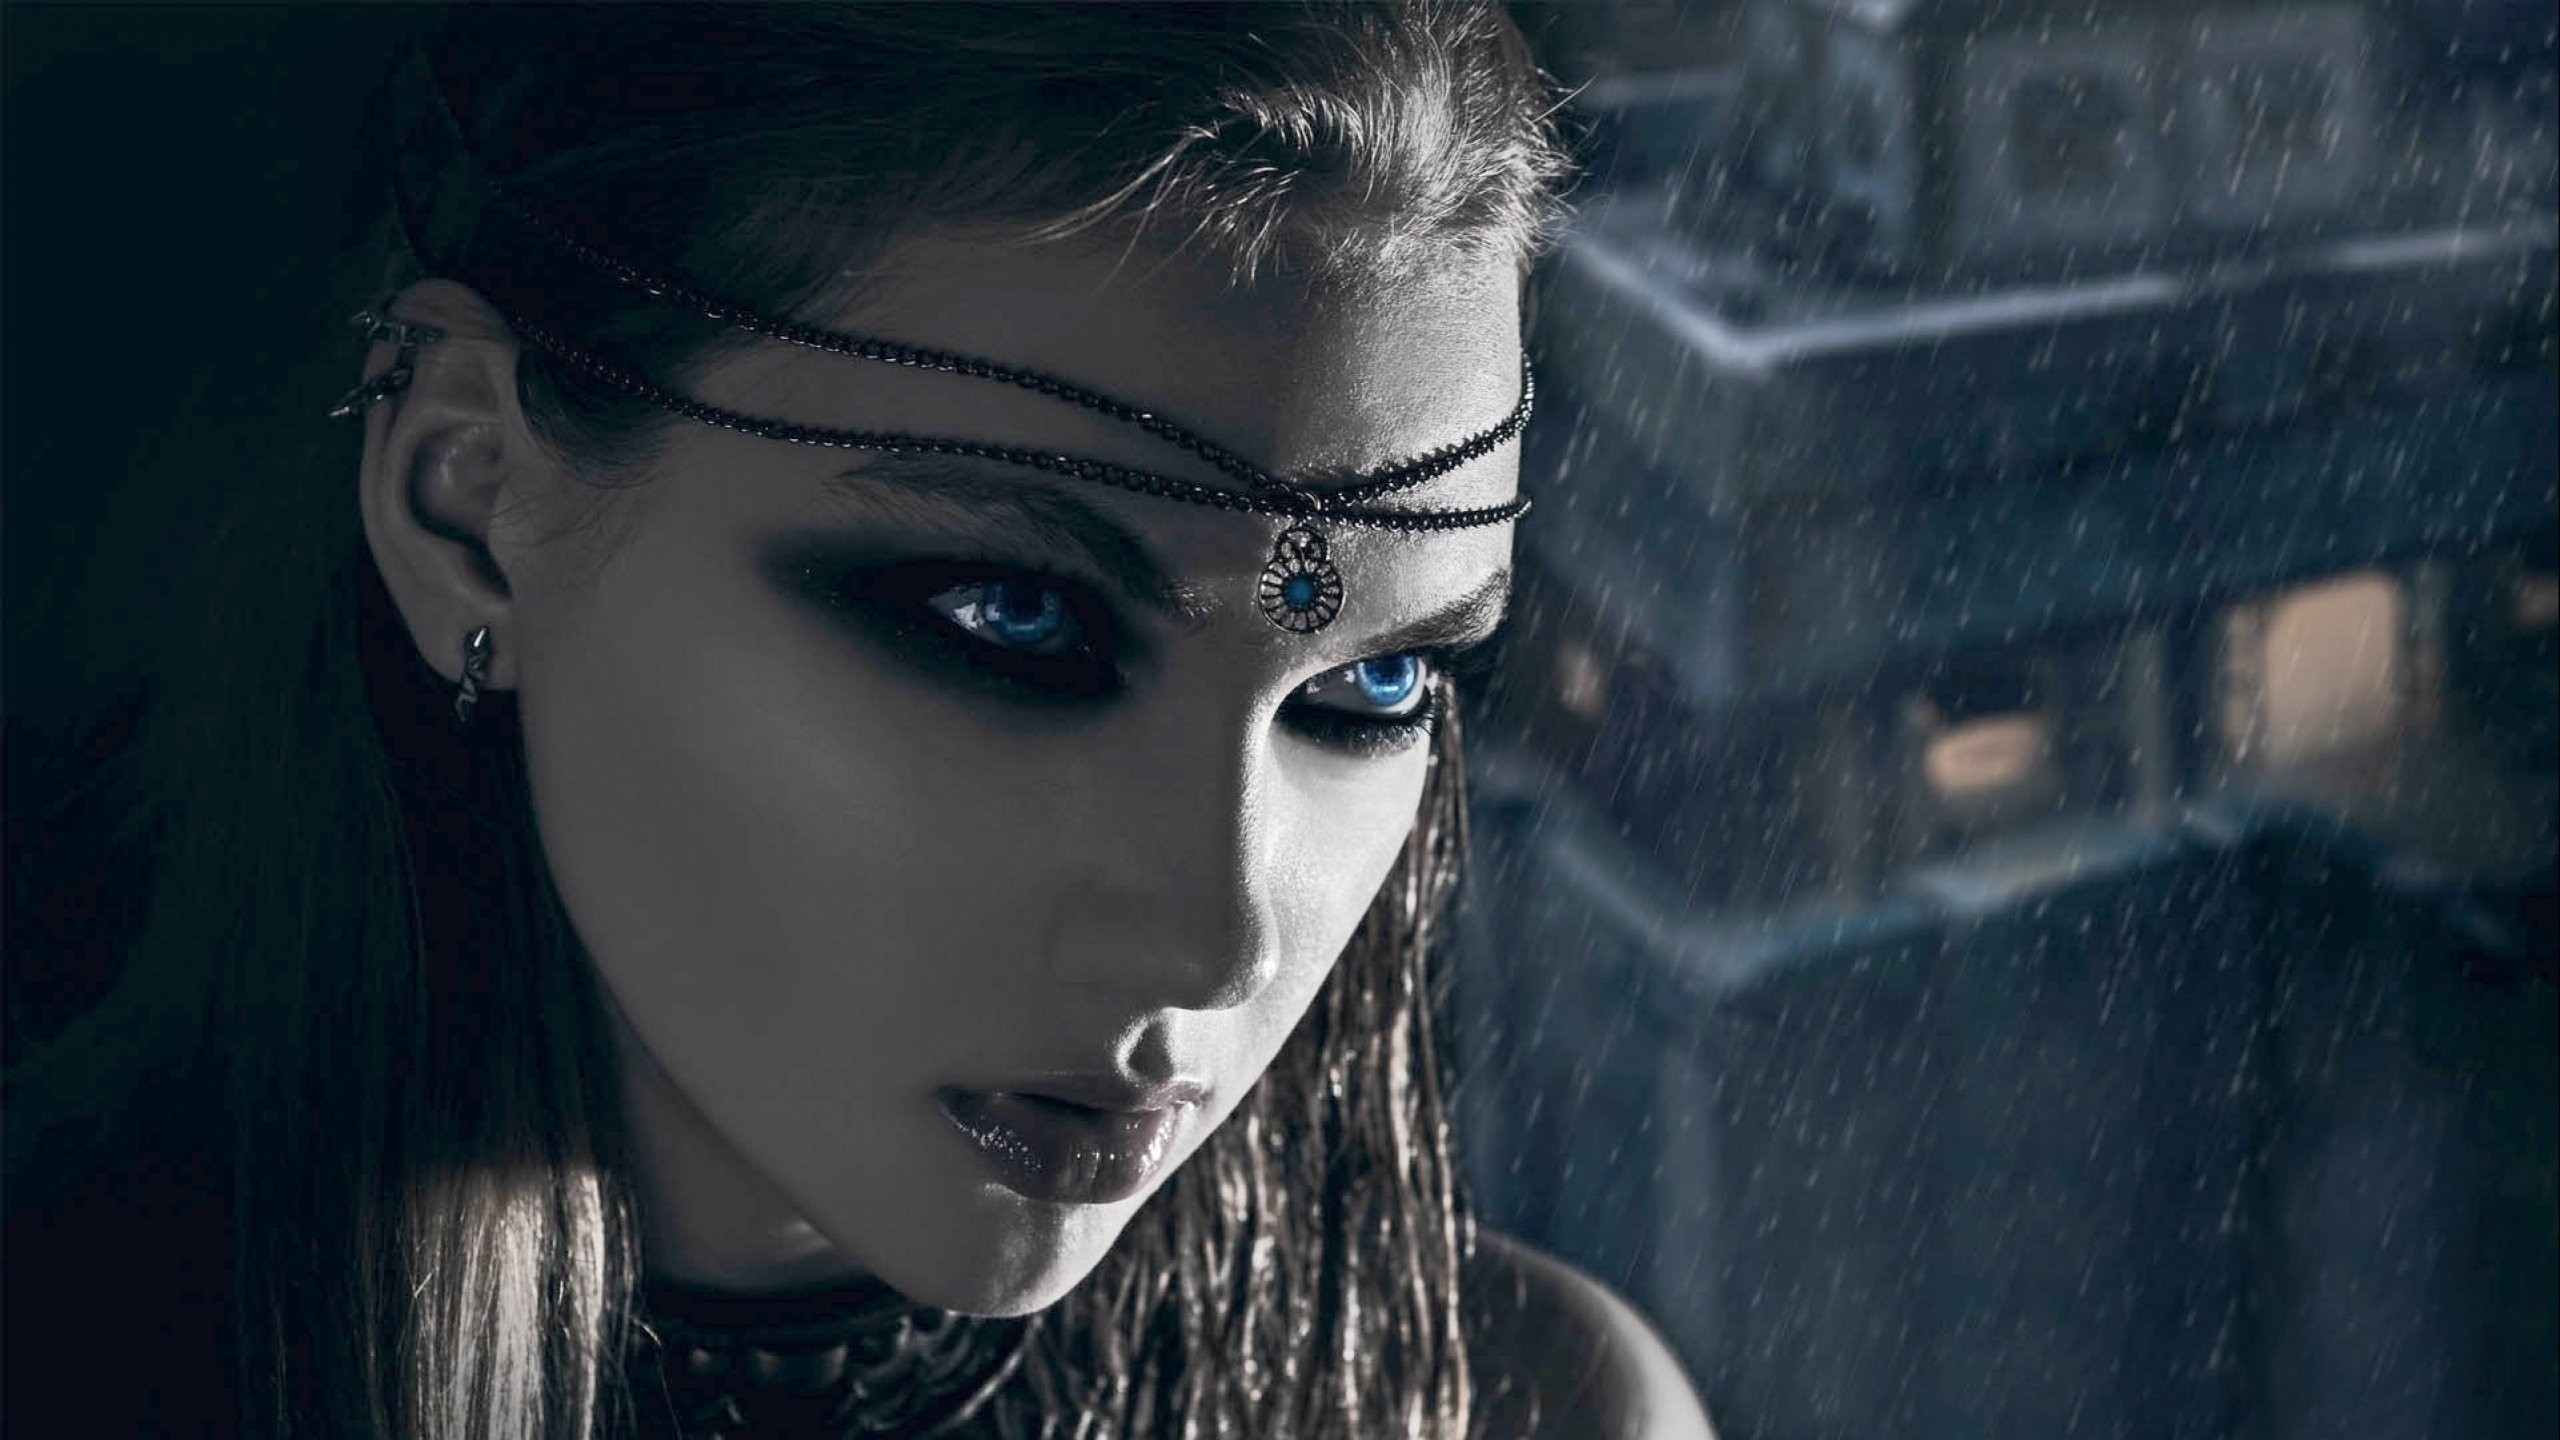 Goth Girl Wallpaper (71+ images)